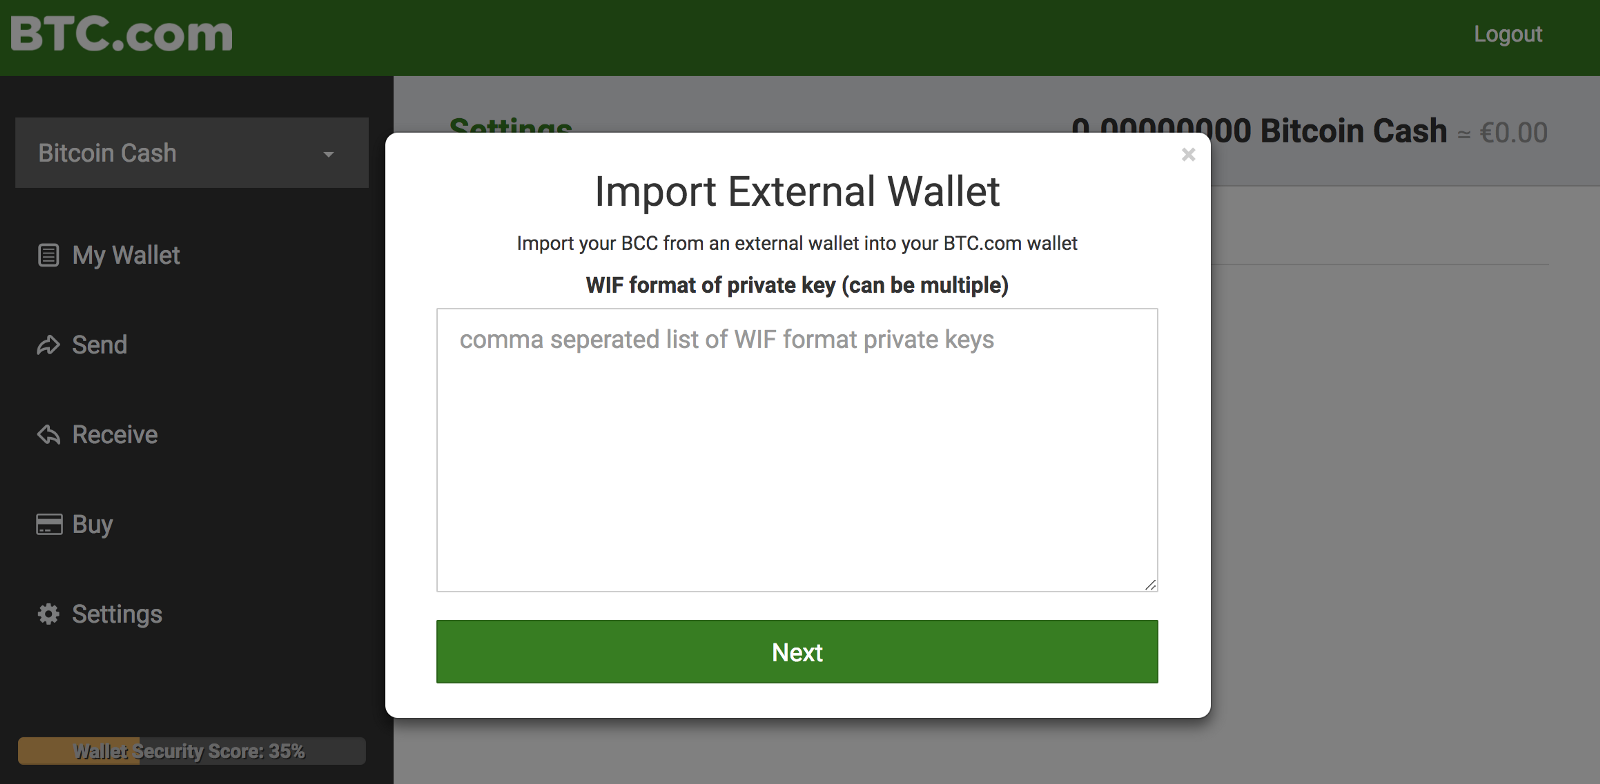 Bitcoin Cash Wallet That Supports Private Key Import How To